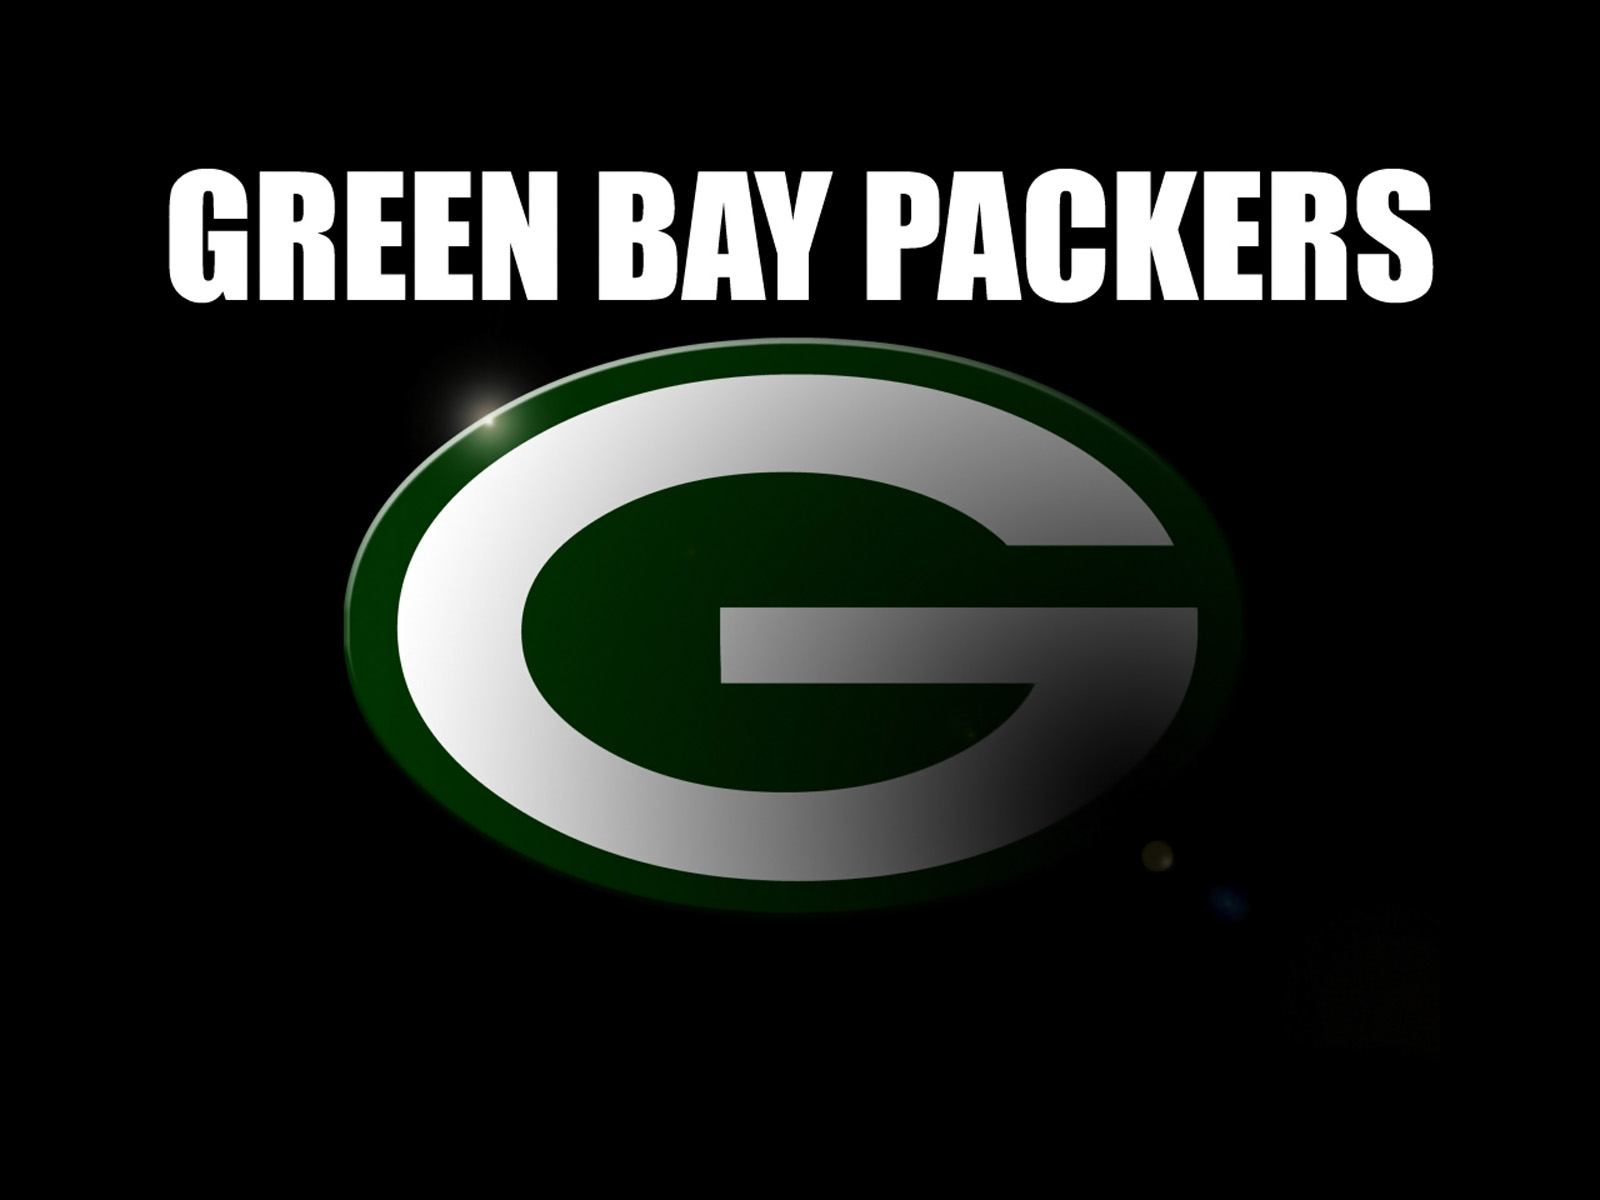 new green bay packers png logo image #2938